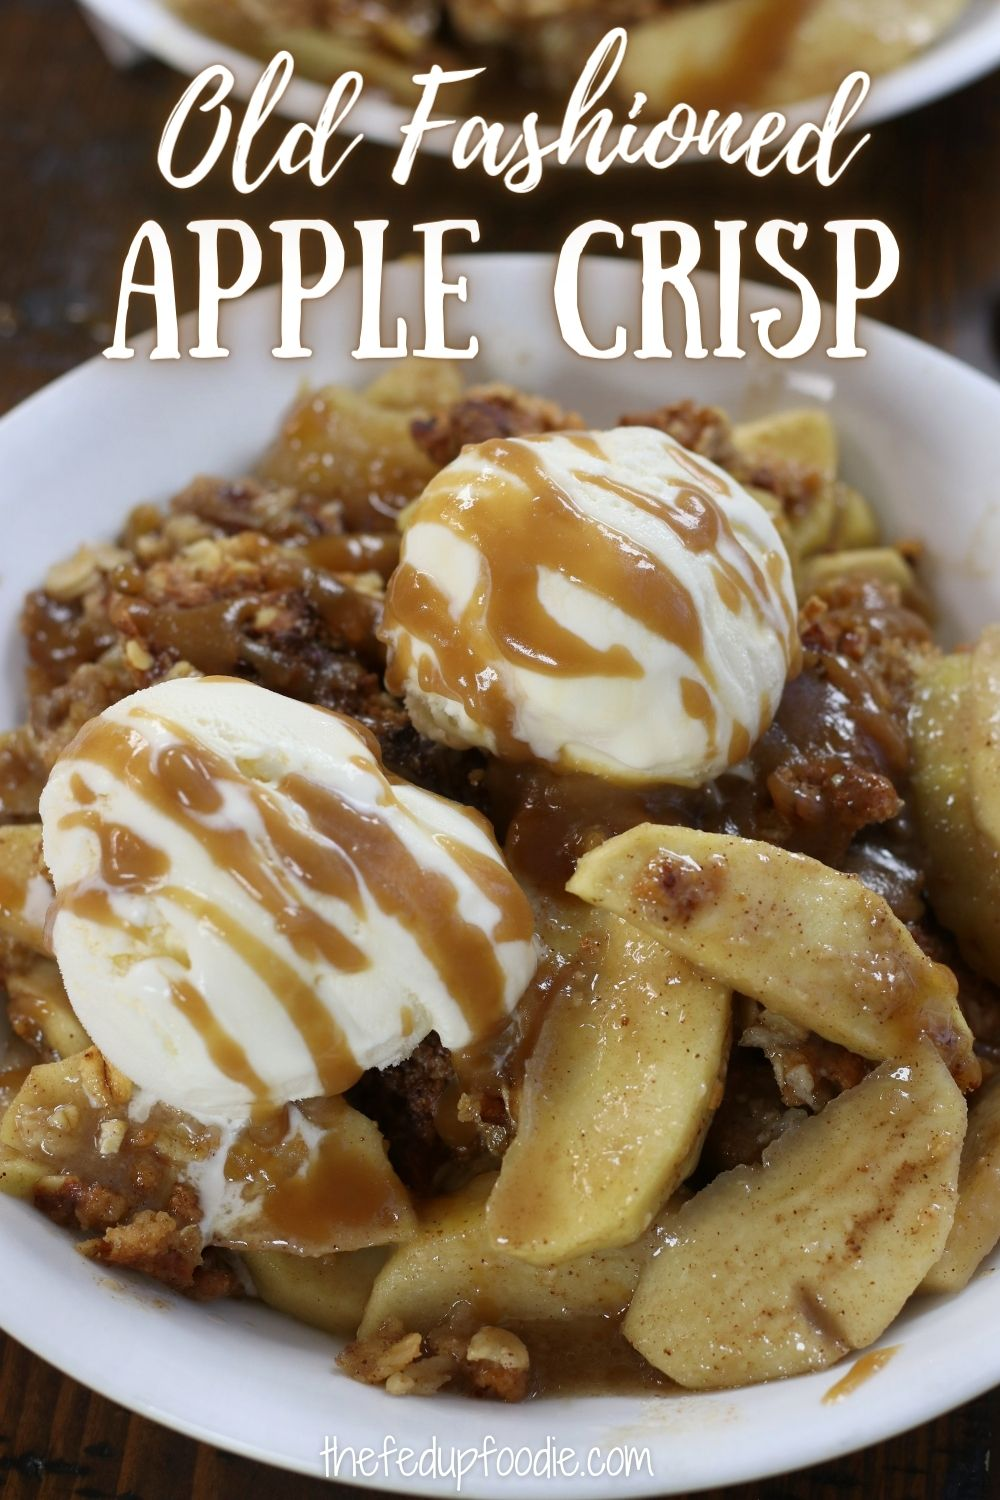 This Apple Crisp recipe has a homemade apple pie filling and the most addictive crumble topping made of oats, cinnamon and chopped pecans. Loaded with flavor and an extra crispy topping, this fall dessert does not disappoint. #AppleCrisp #AppleCrispRecipeWithOats #AppleCrispTopping #AppleCrispWithOatmeal #AppleCrispWithFreshApples #BestAppleCrispEver #HomemadeAppleCrisp #BakedAppleCrisp